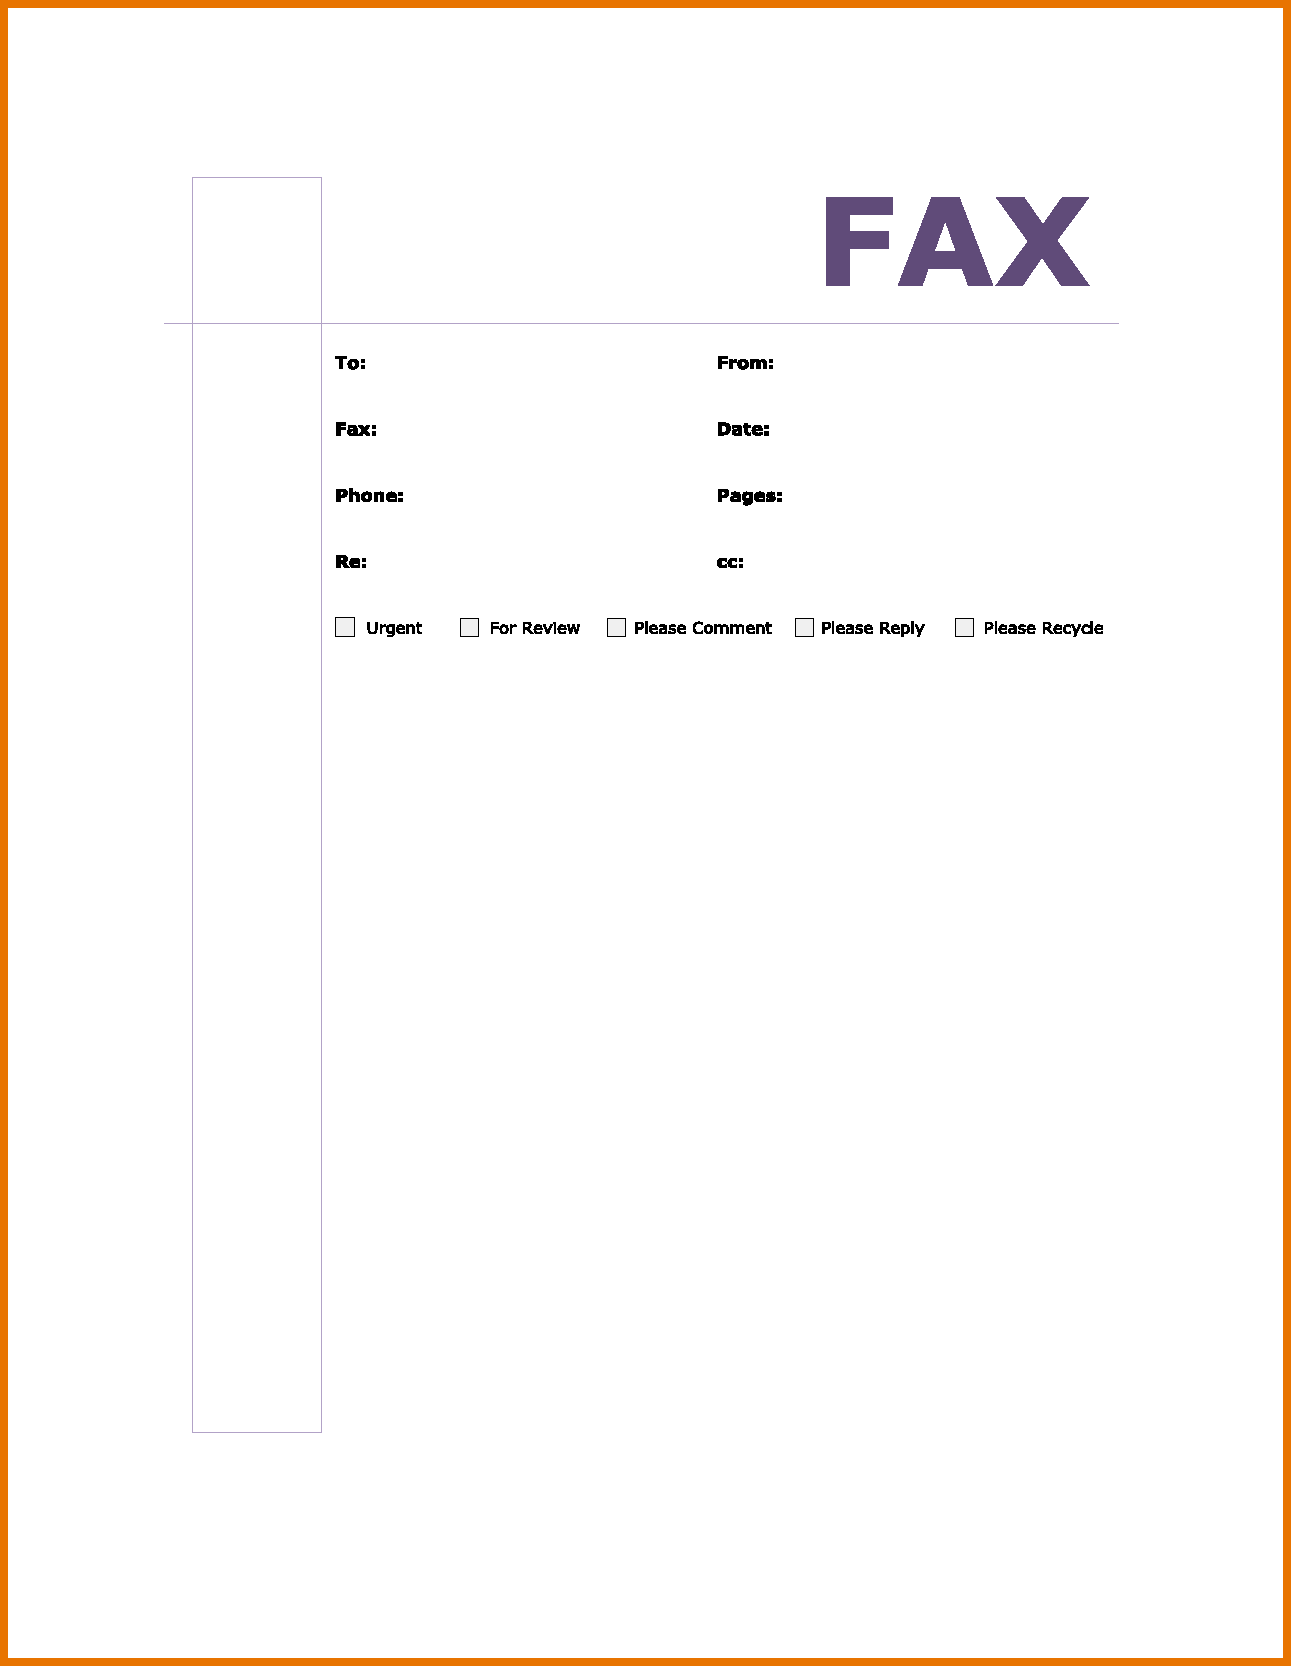 10  fax cover sheet template in word  u0026 doc